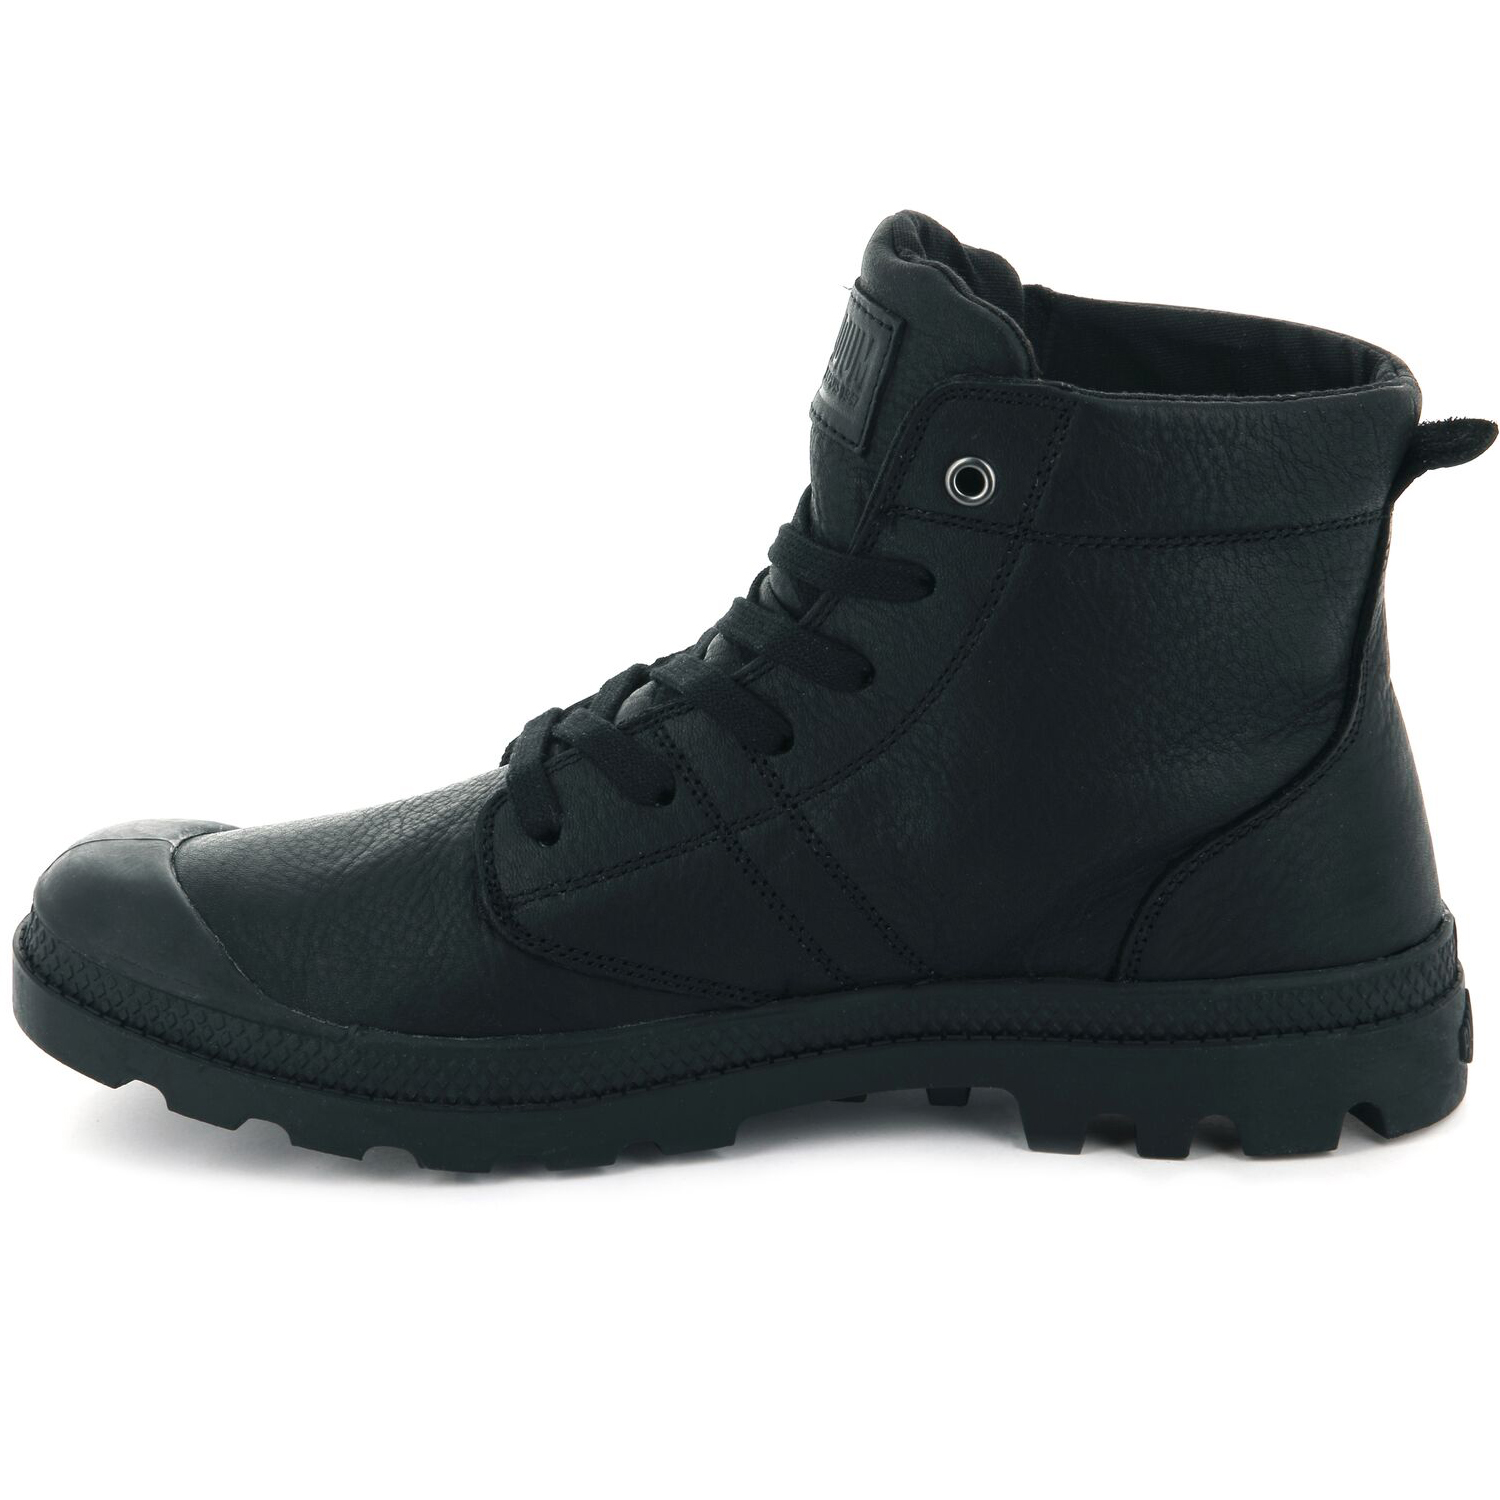 Palladium-Mens-Pallabrousse-Leather-Lace-Up-Boots-Walking-Chukka-Ankle-Shoes thumbnail 4